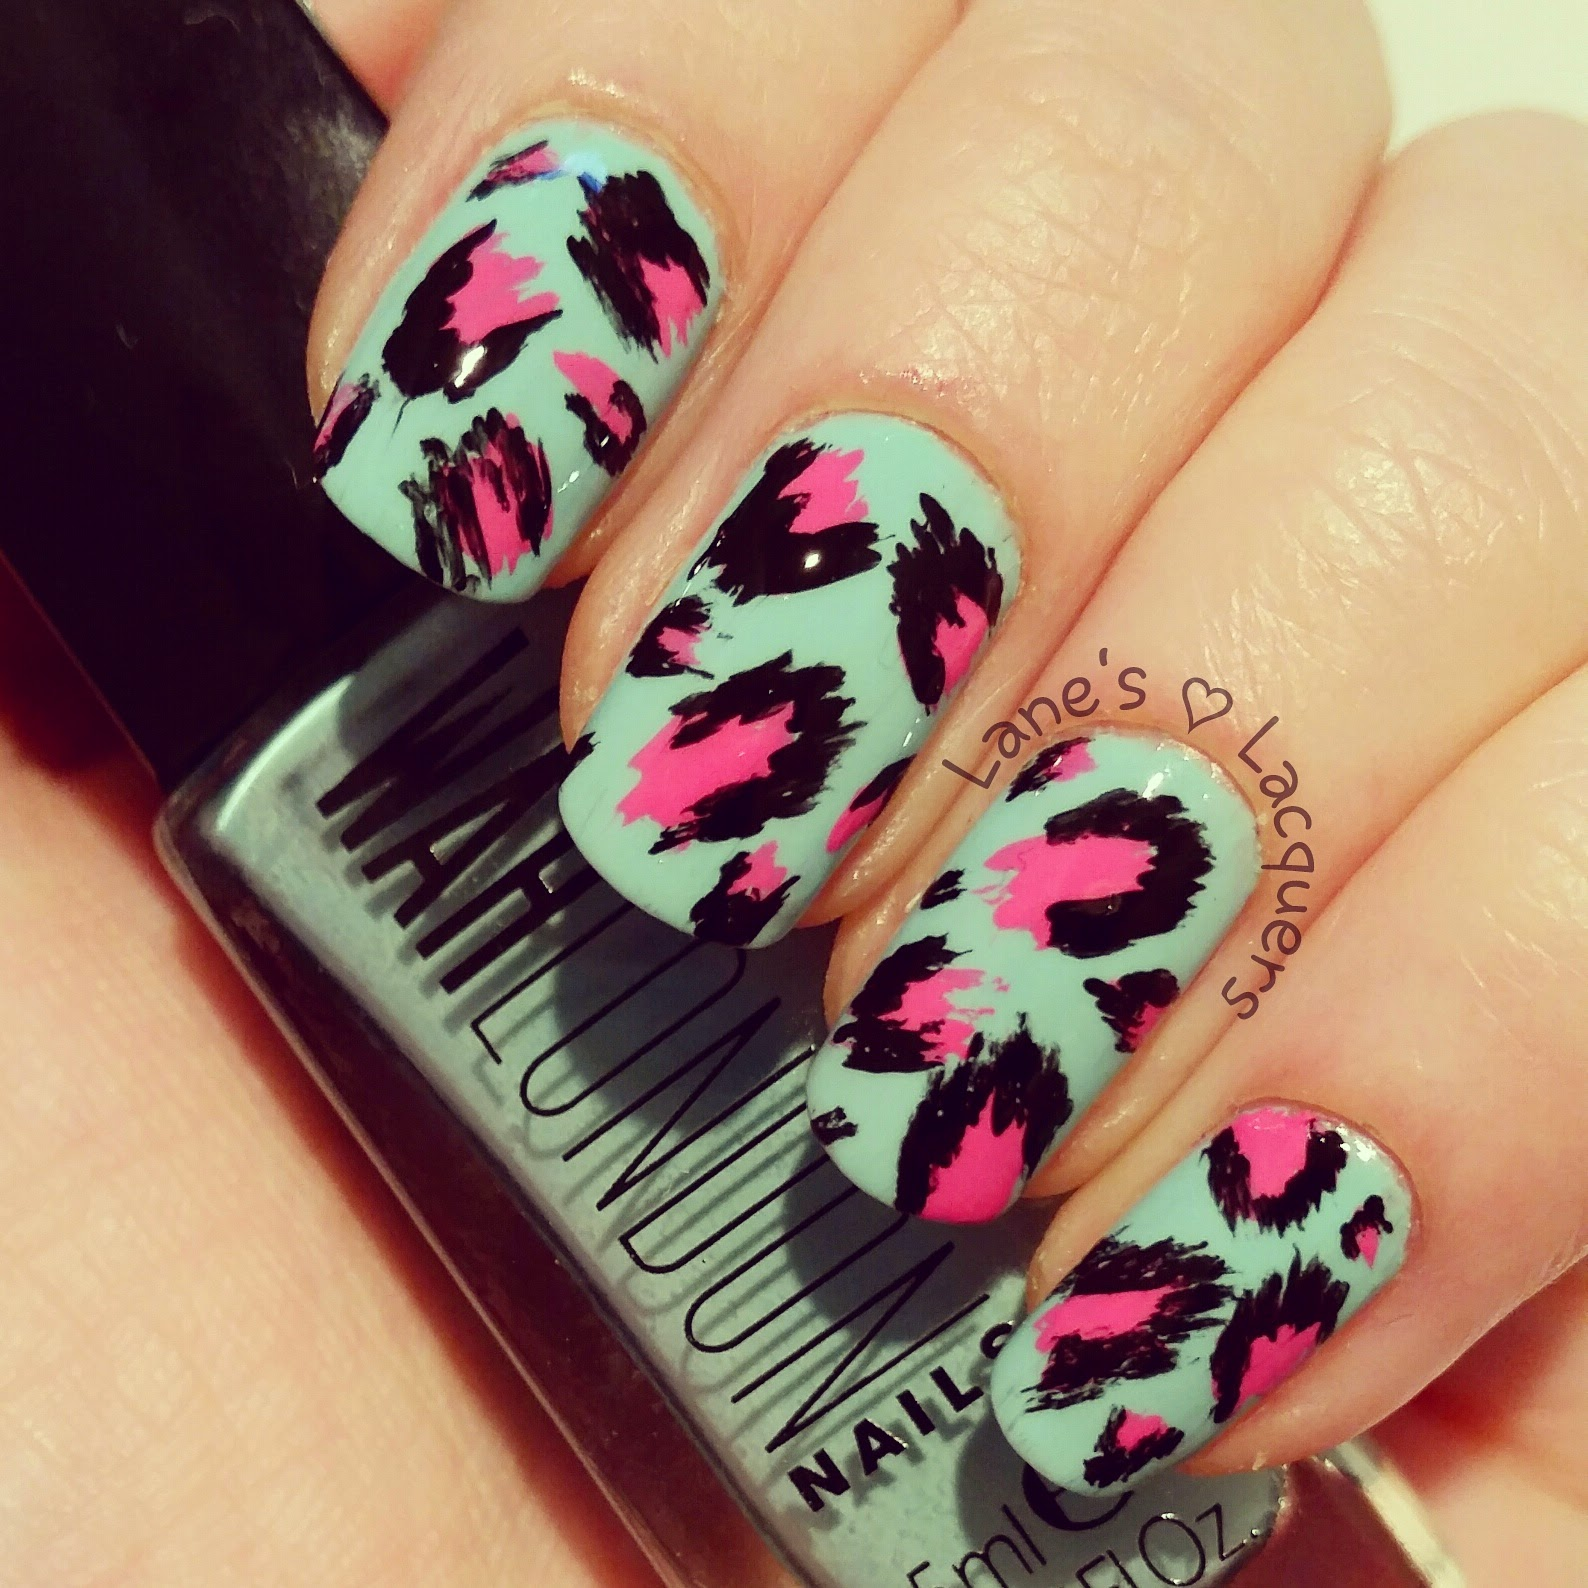 wah-nails-big-leopard-nail-art (2)